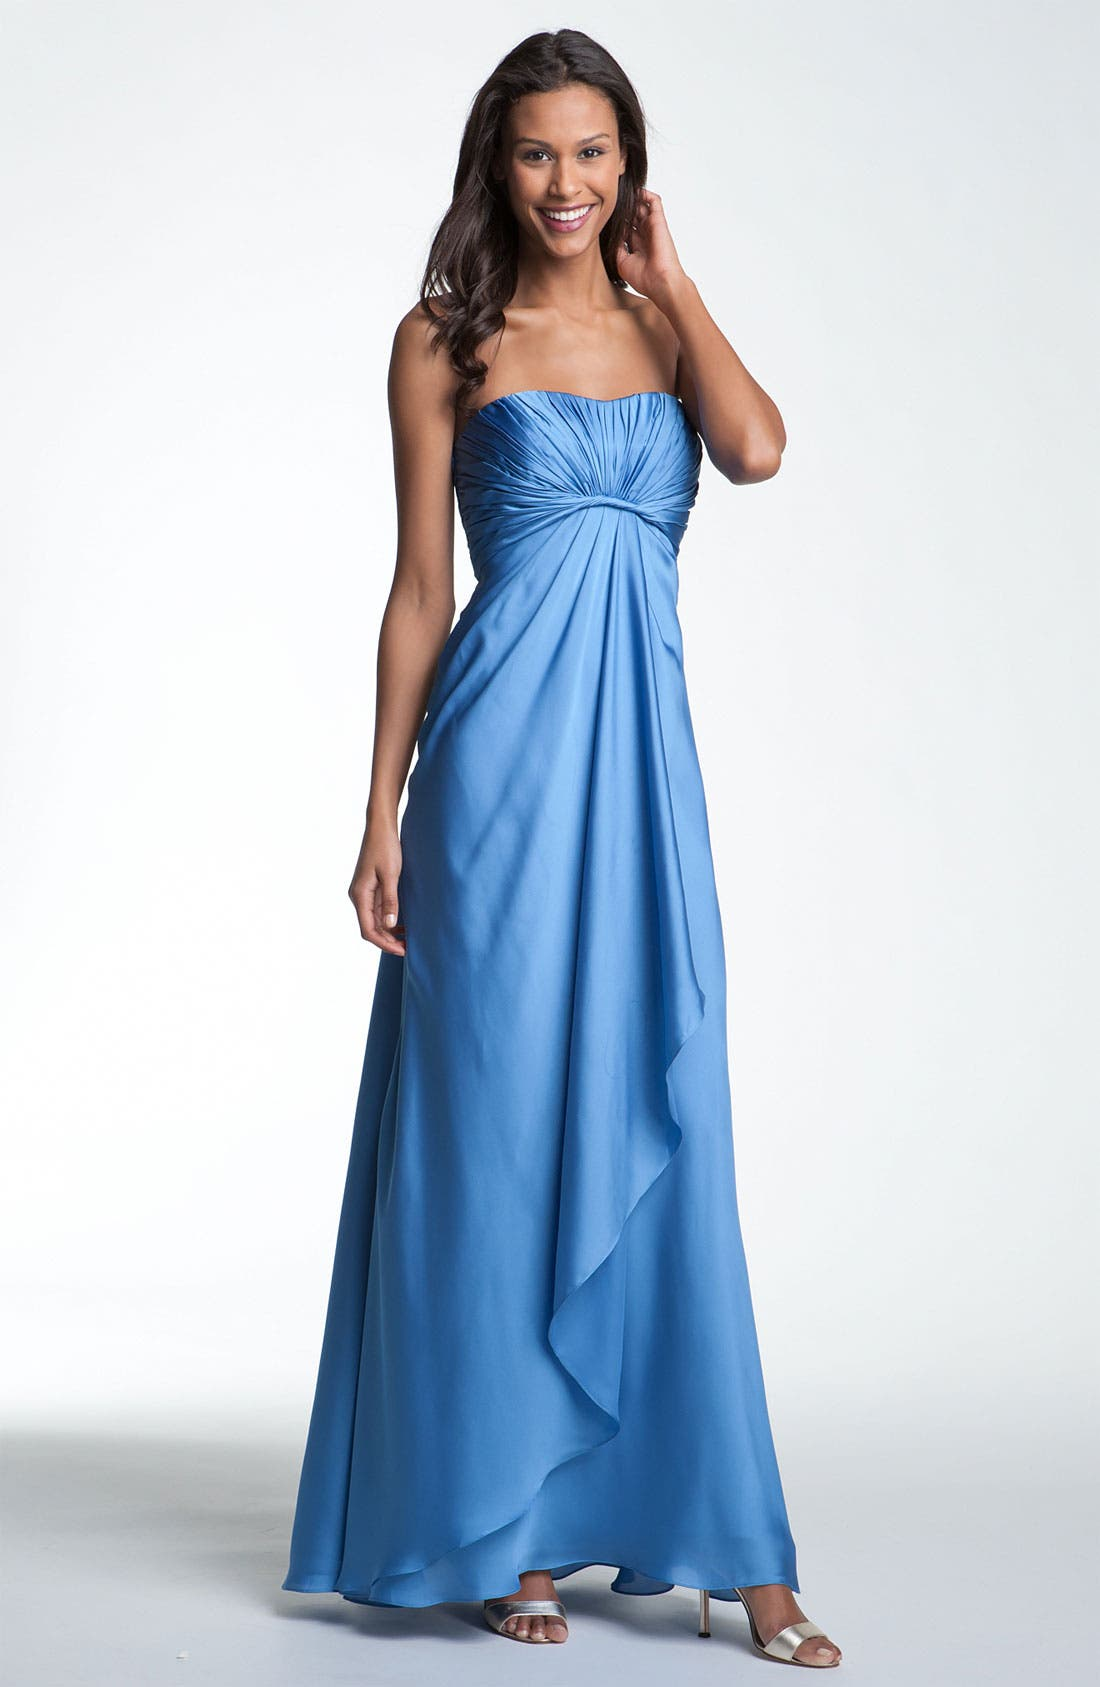 Alternate Image 1 Selected - ML Monique Lhuillier Bridesmaids Strapless Gown (Nordstrom Exclusive)